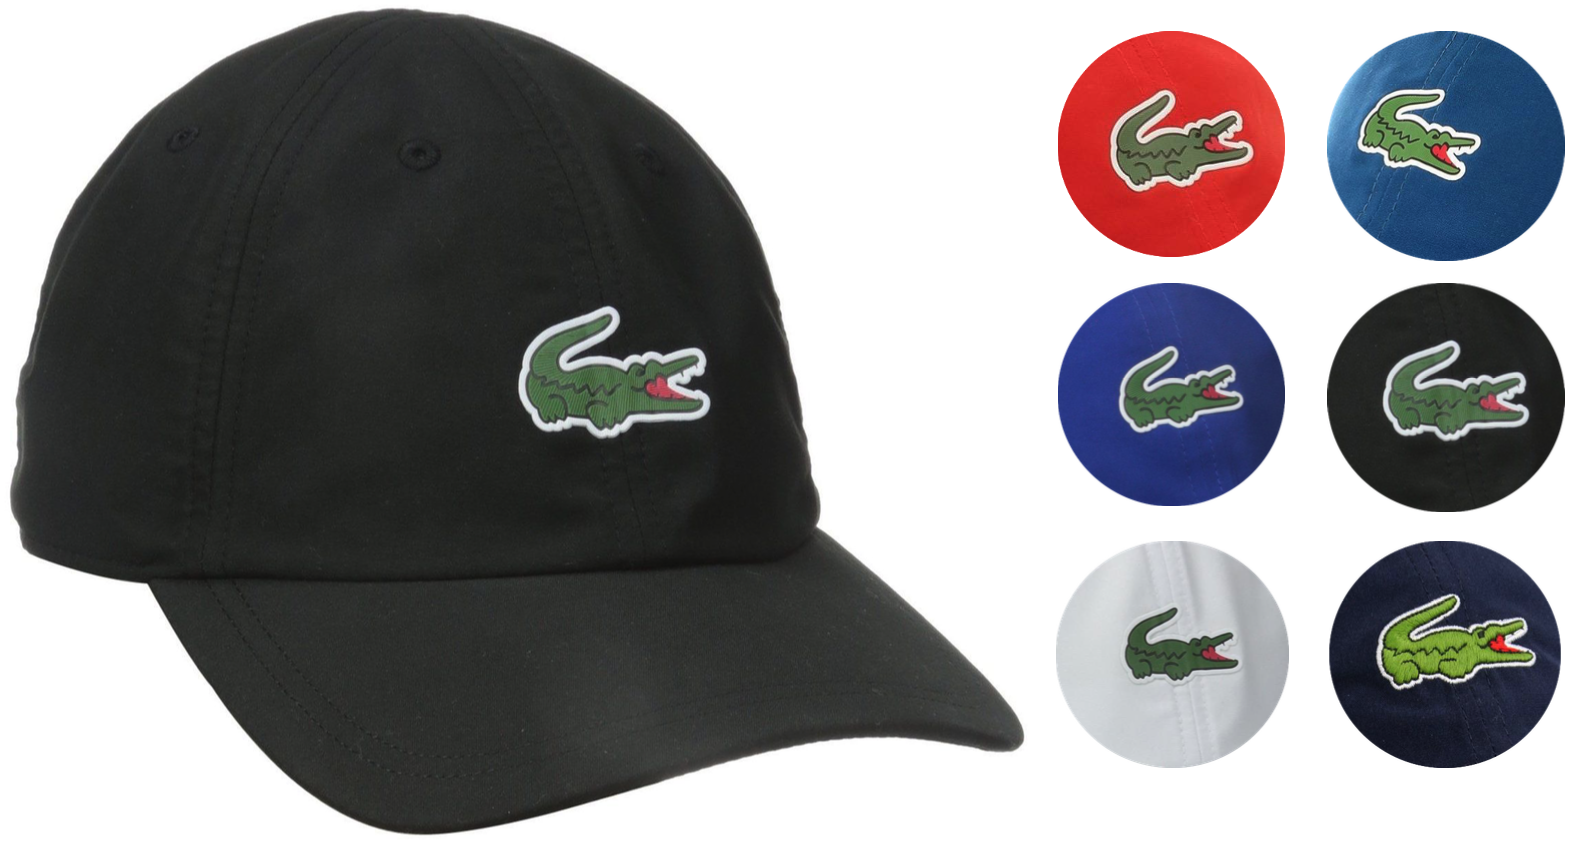 New Lacoste Men's Premium Classic Croc Logo Sport Polyester Adjustable Hat Cap